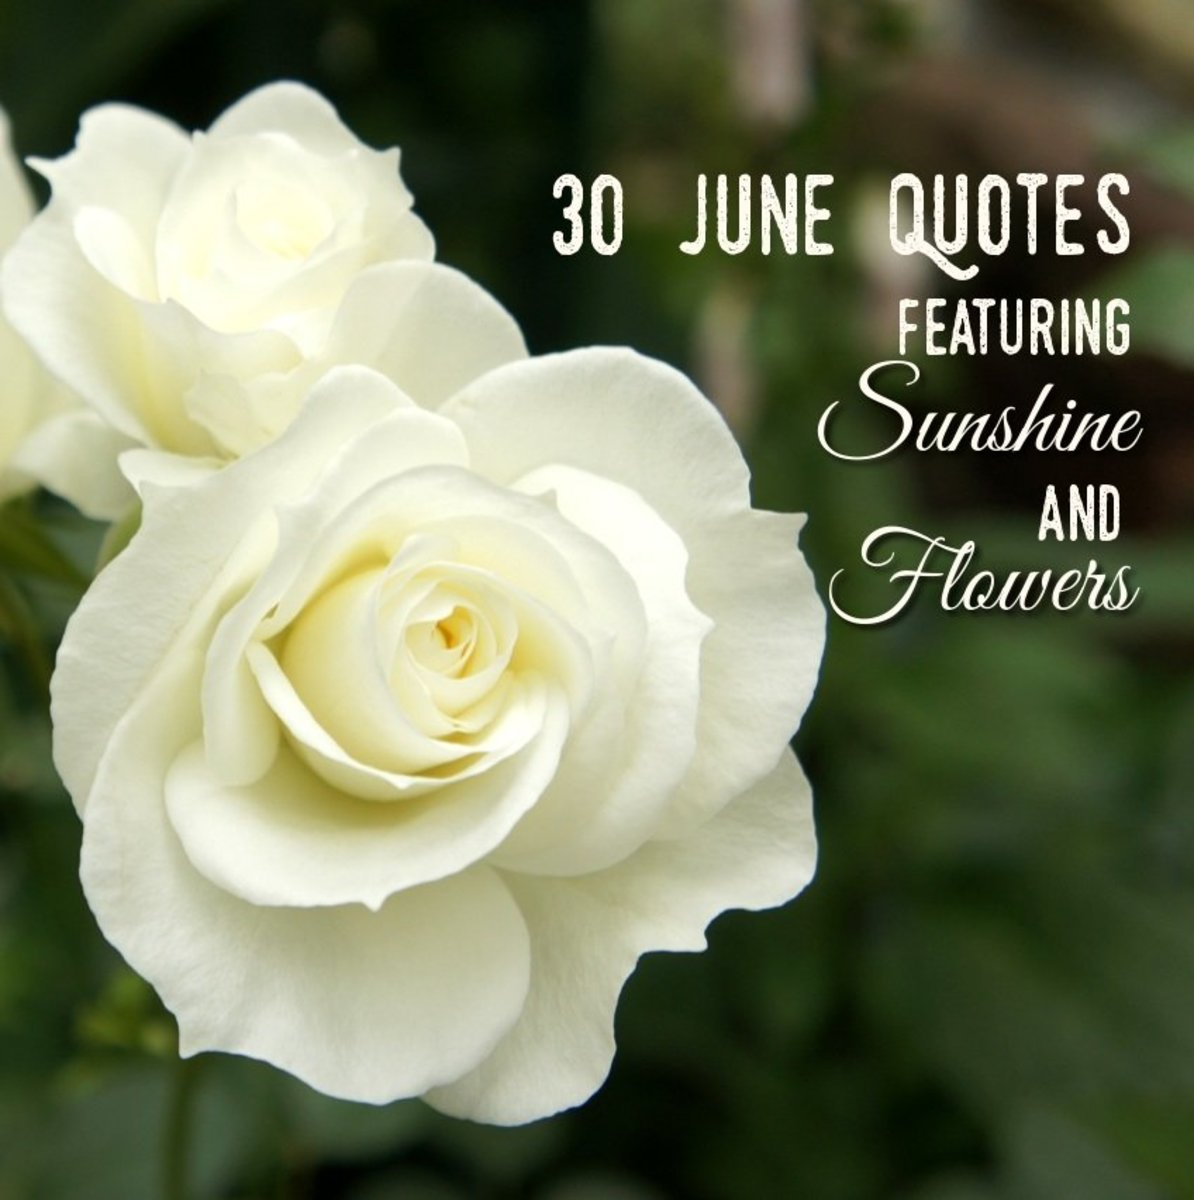 30 June Quotes Featuring Sunshine and Flowers